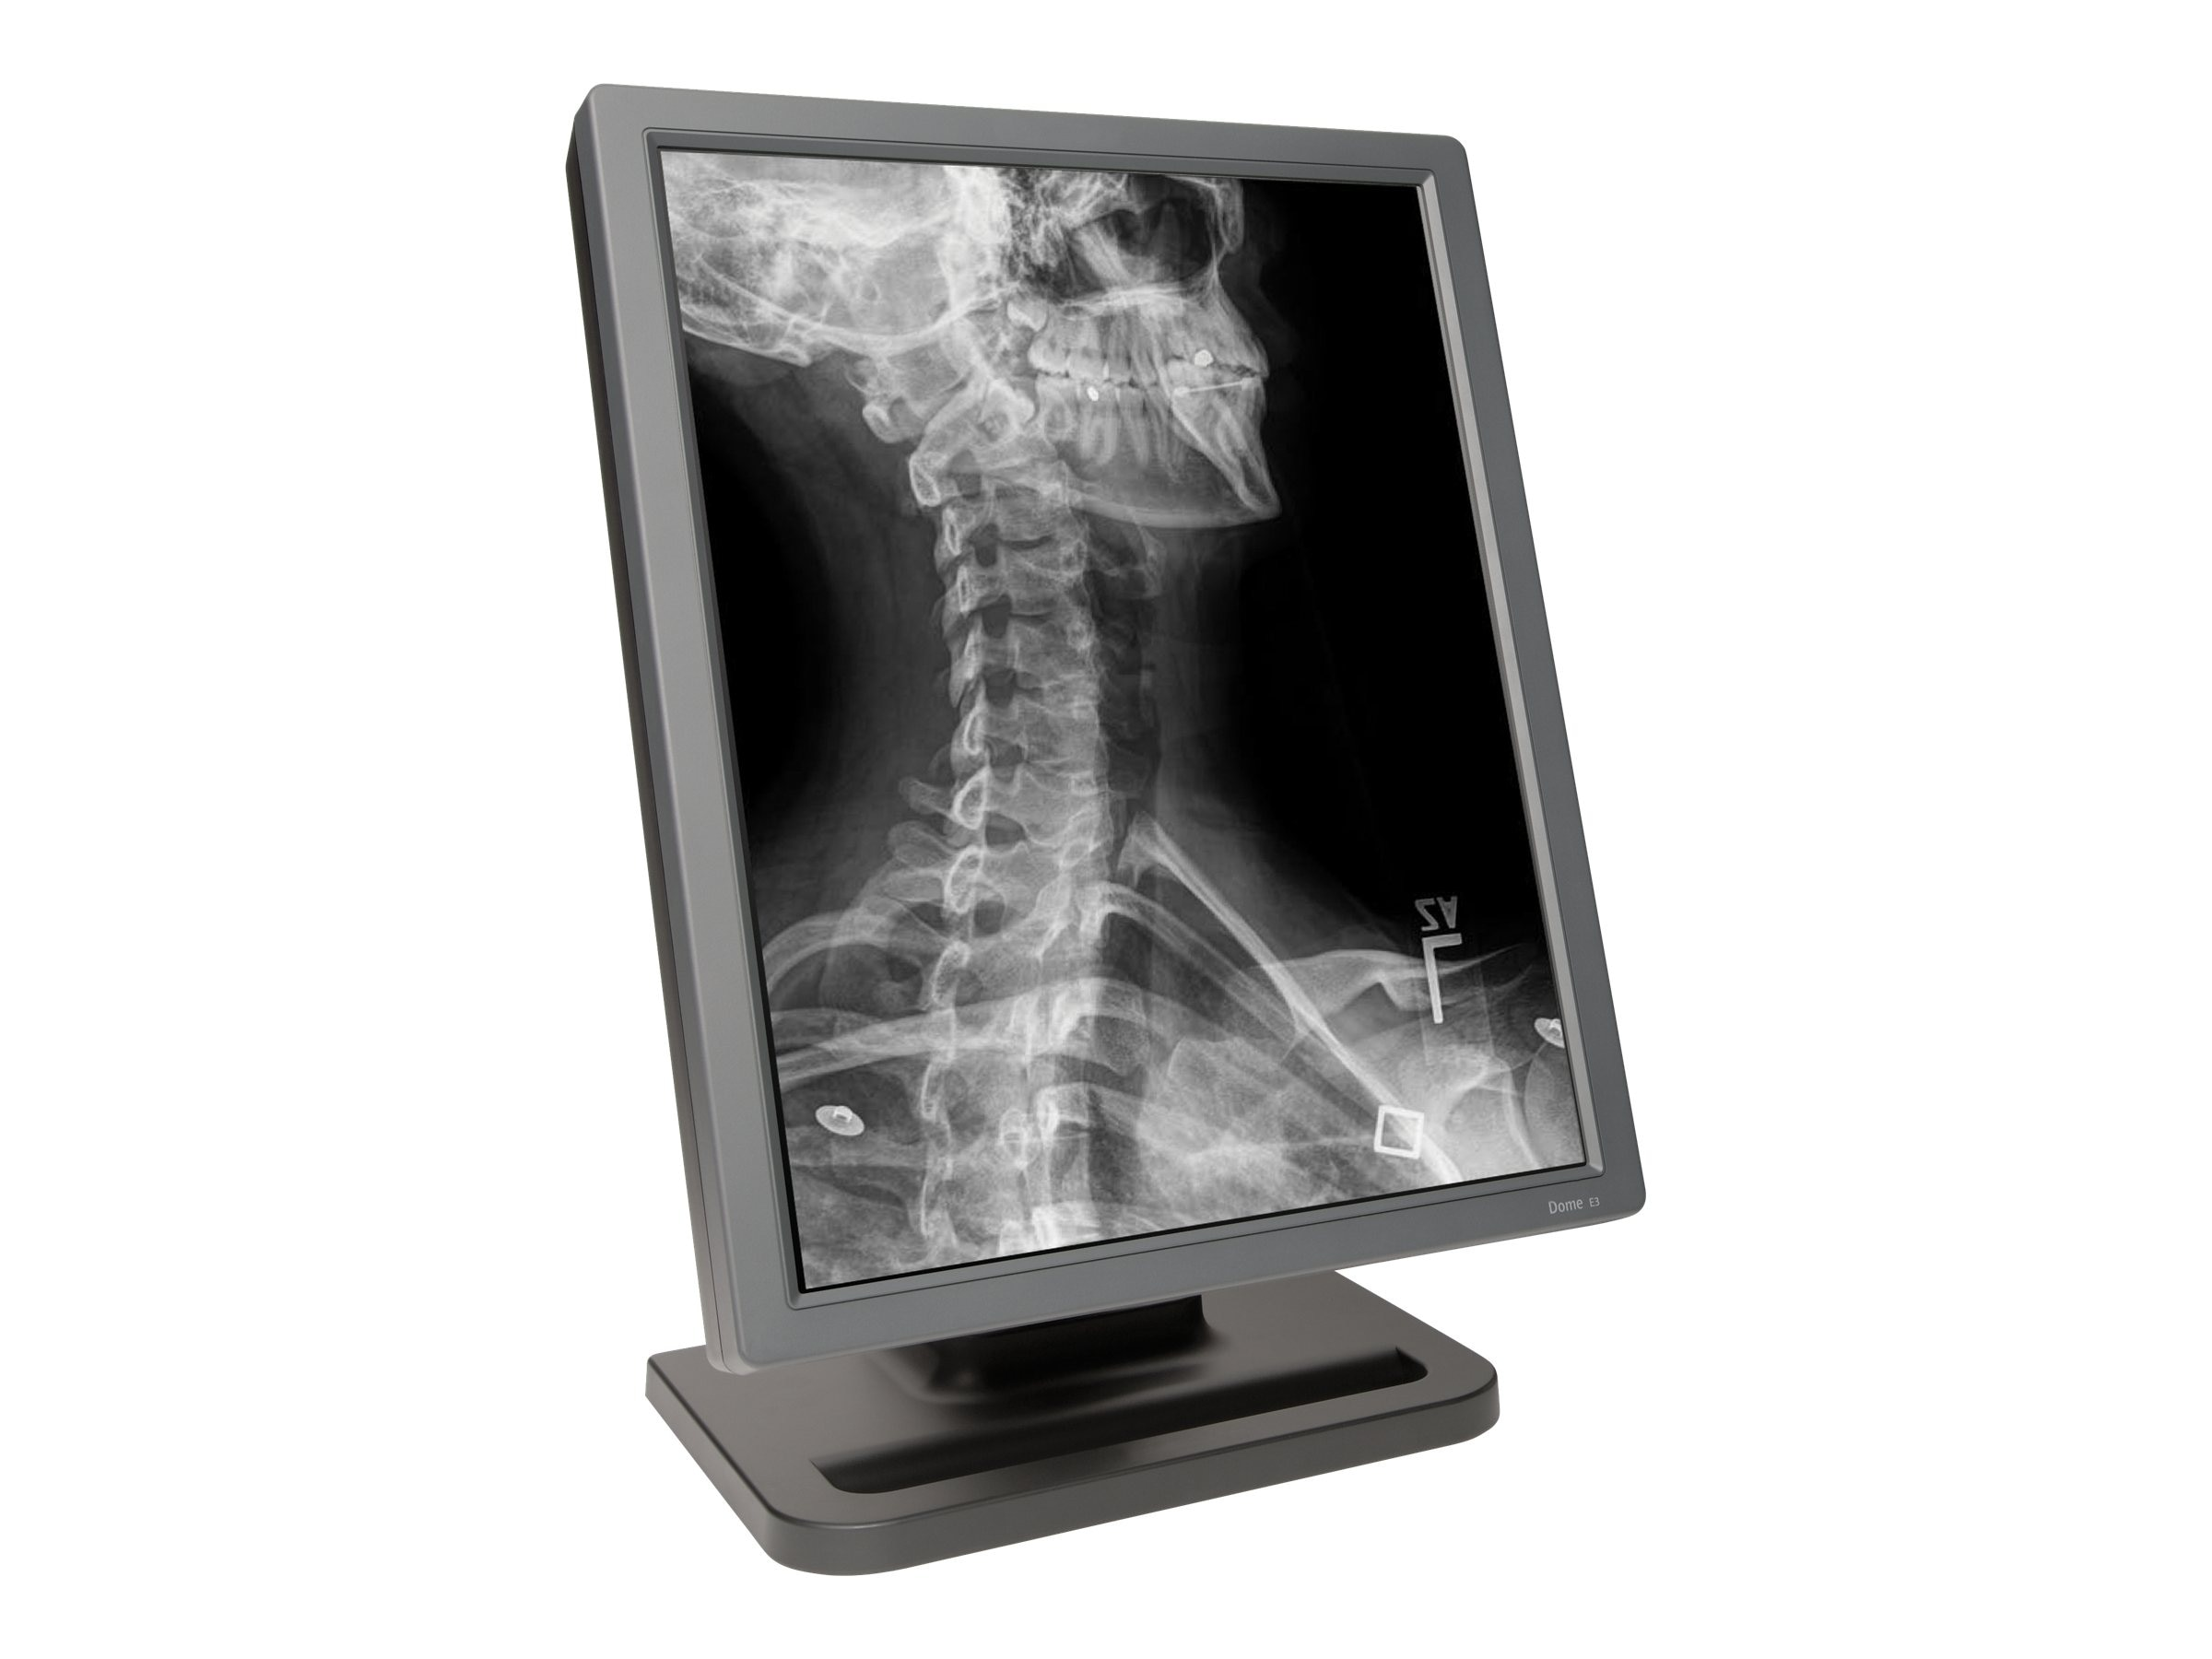 NDS Surgical Imaging 997-5813-00-1FN Image 1